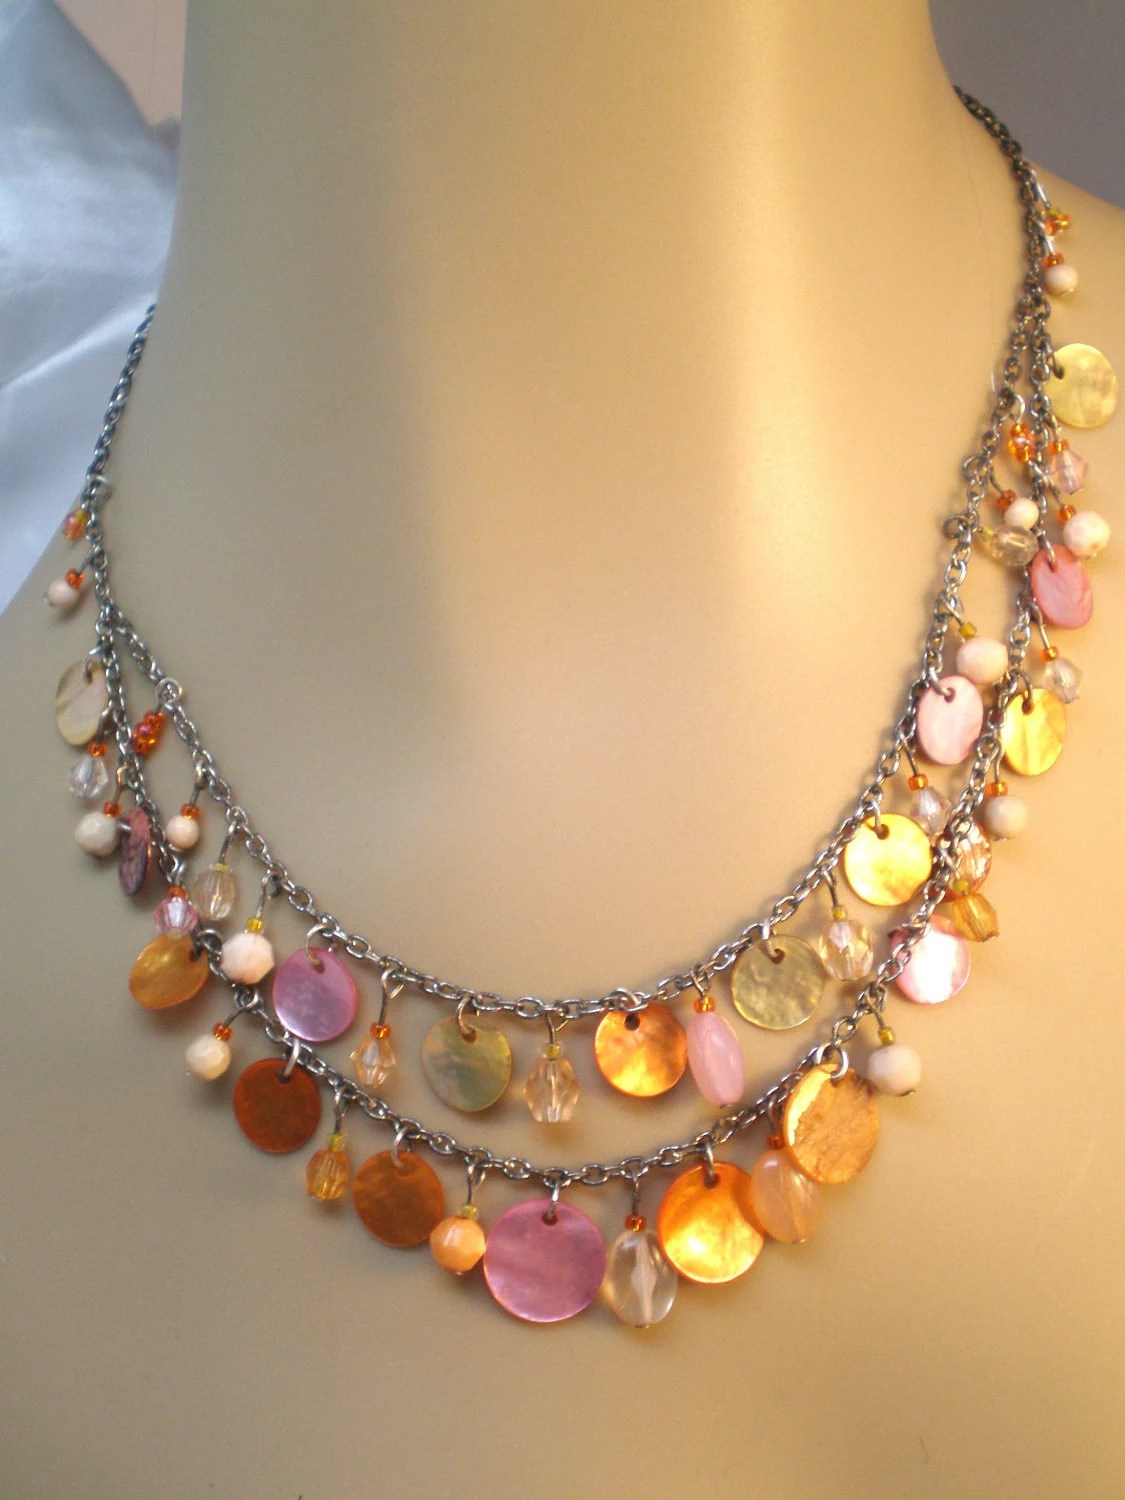 Vintage Necklace an Earring Set Mother of Pearl Czech 4in Dangles Pinks Oranges Peaches Glass Beads 2 Strands